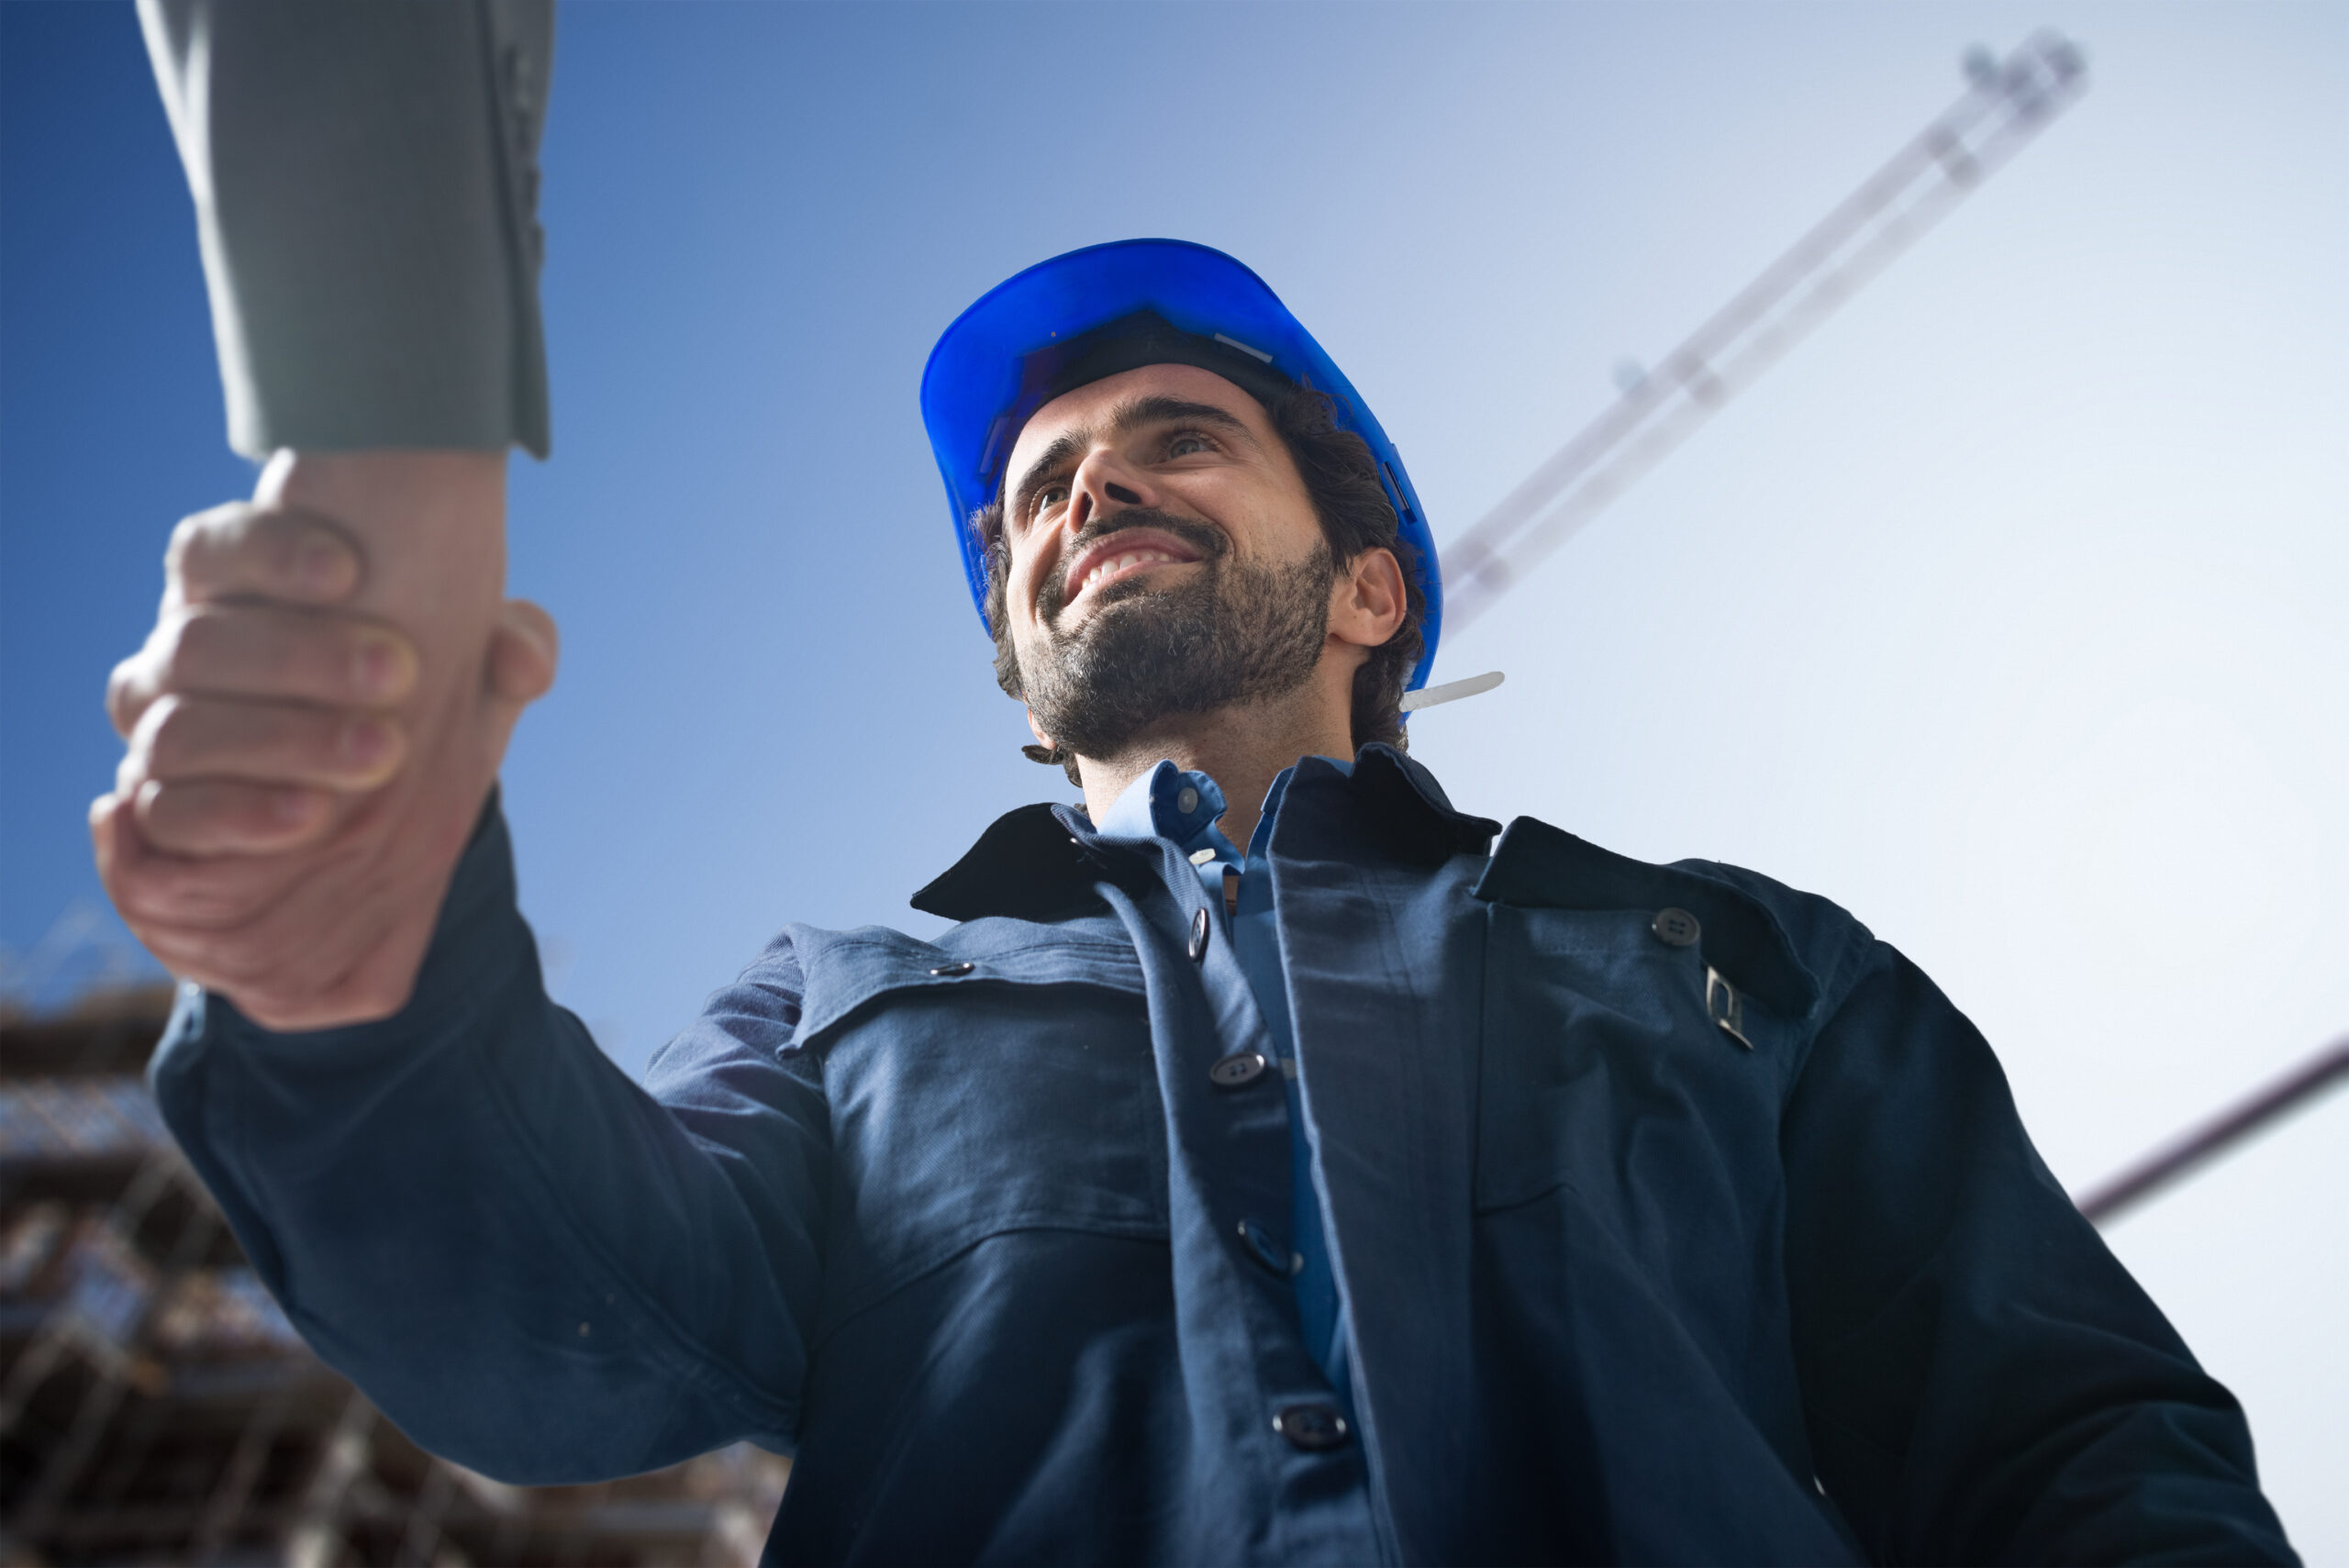 Why Realtors Need to Network with Local Builders